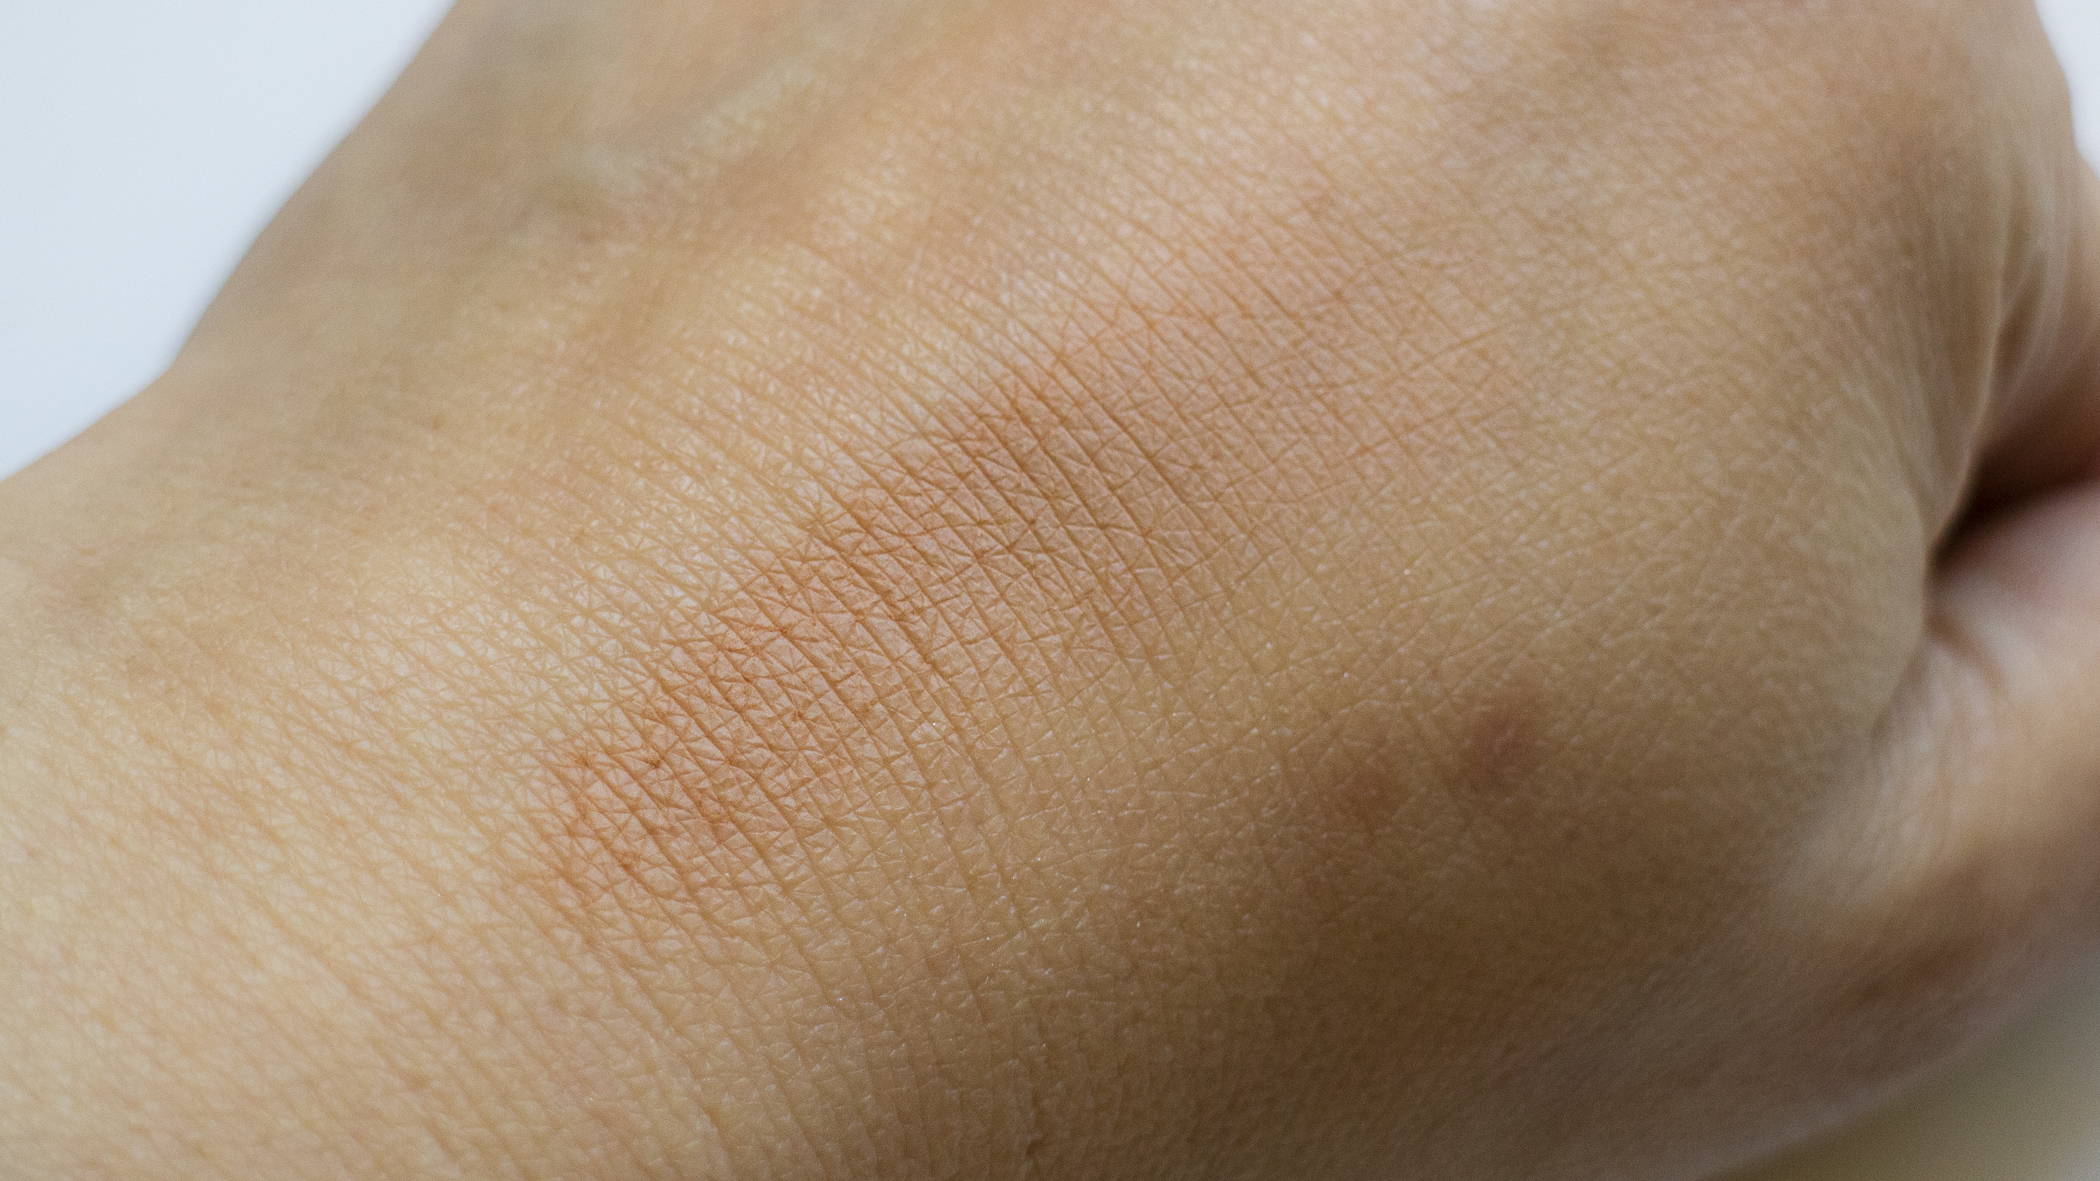 Marc Jacobs O!Mega Bronzer in Tantric 102 finger swatched.